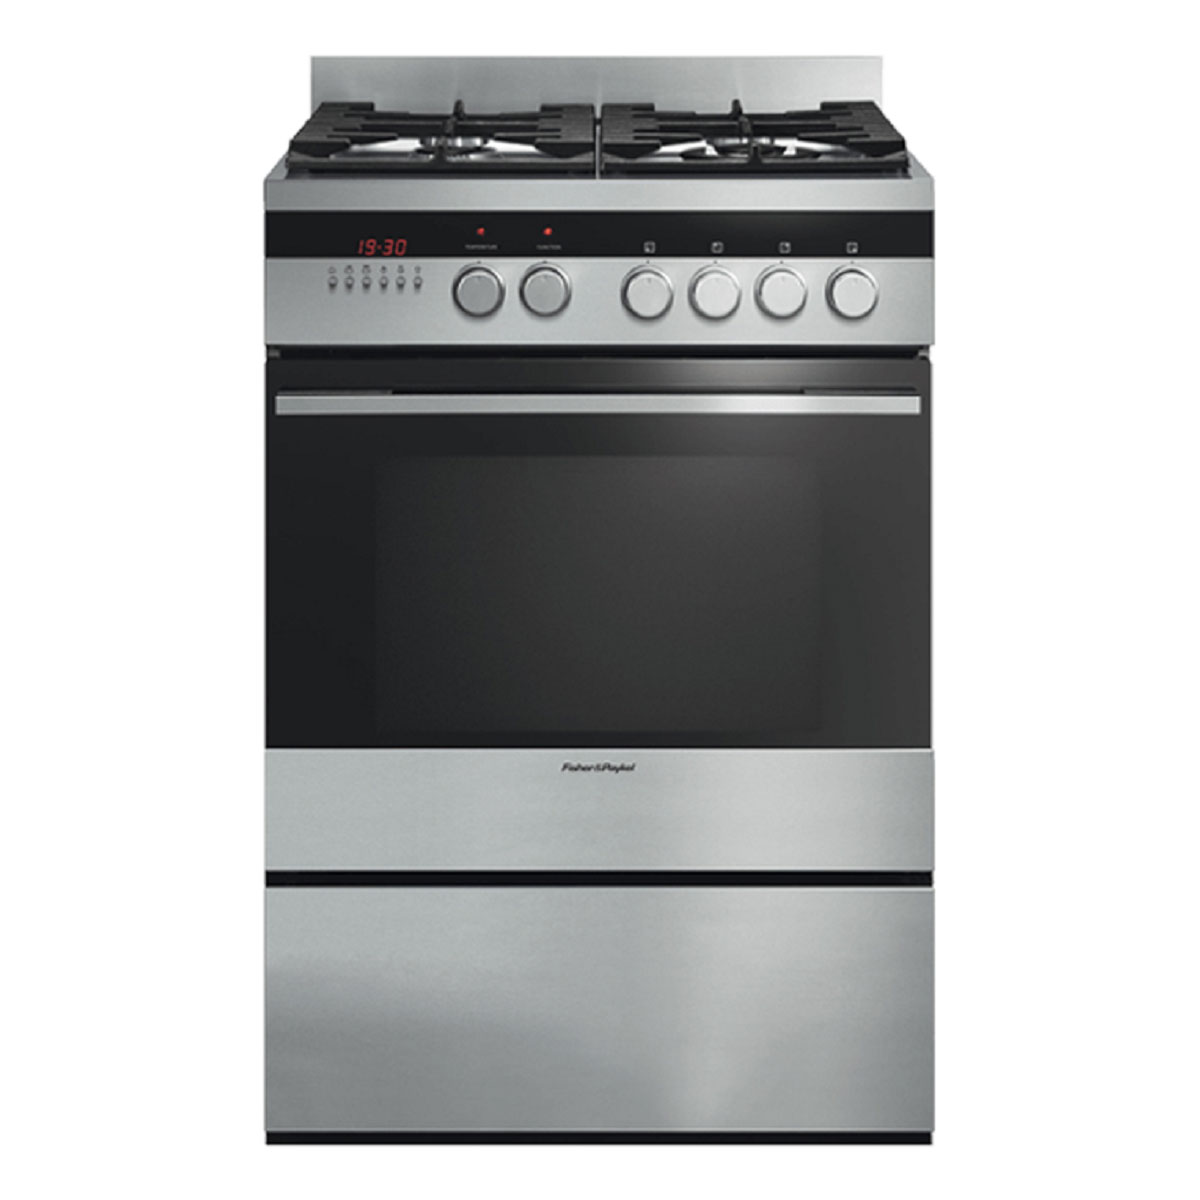 Fisher & Paykel OR60SDBGFX2 Freestanding Dual Fuel Oven/Stove 29123